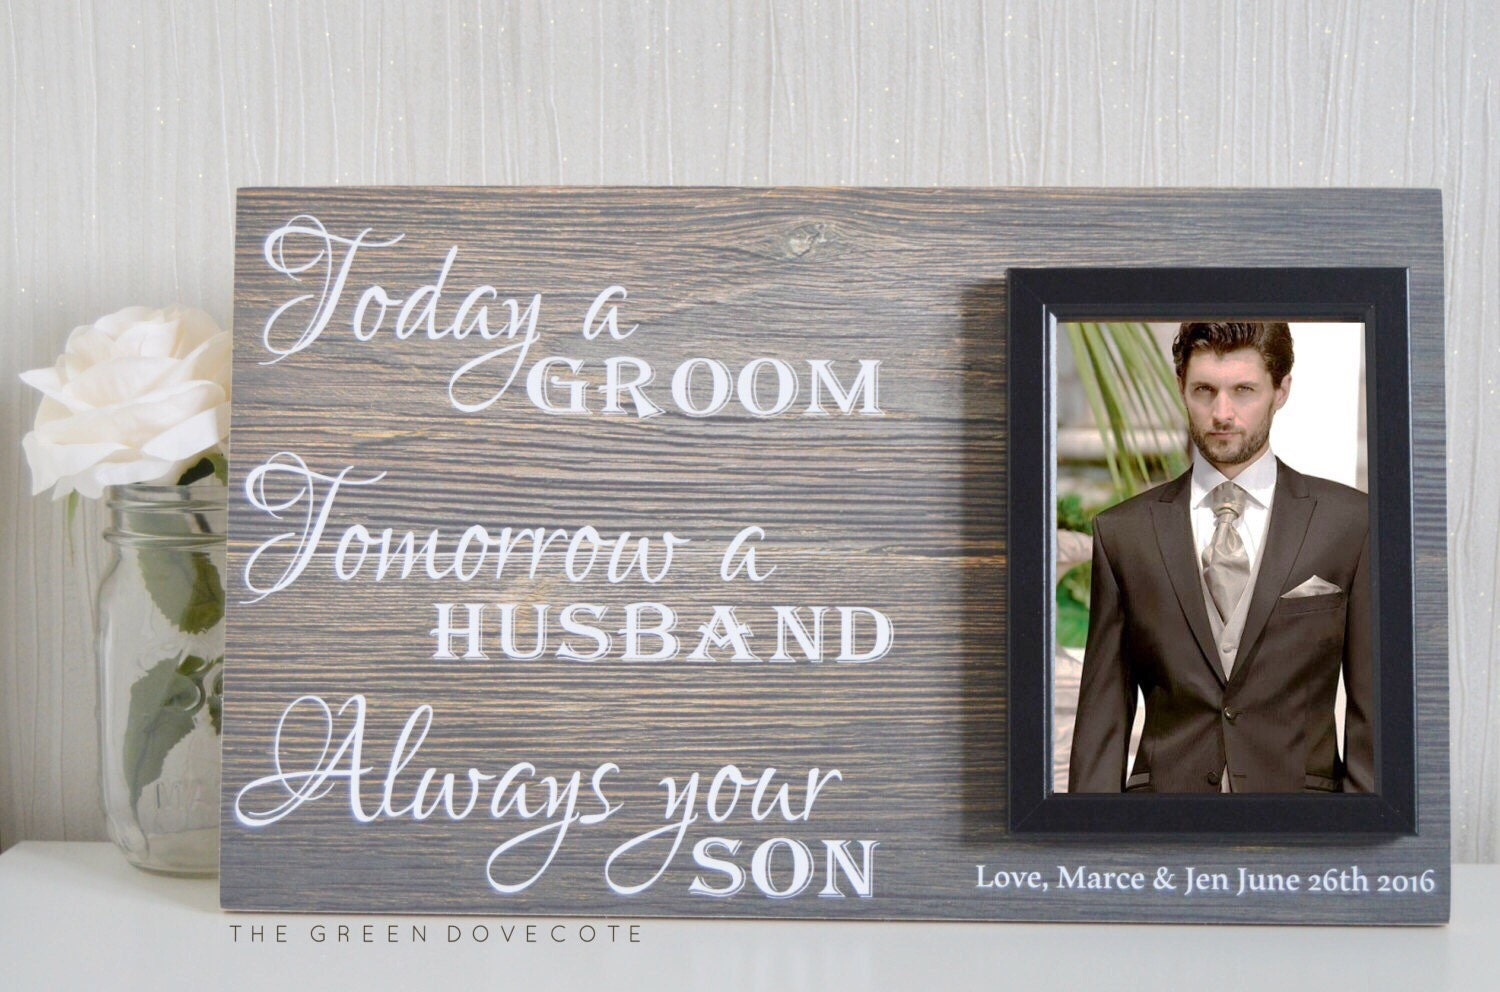 Wedding Gifts For Parents Of The Groom : Parents Of The Groom Gift Mother Of The Groom Wedding Gift